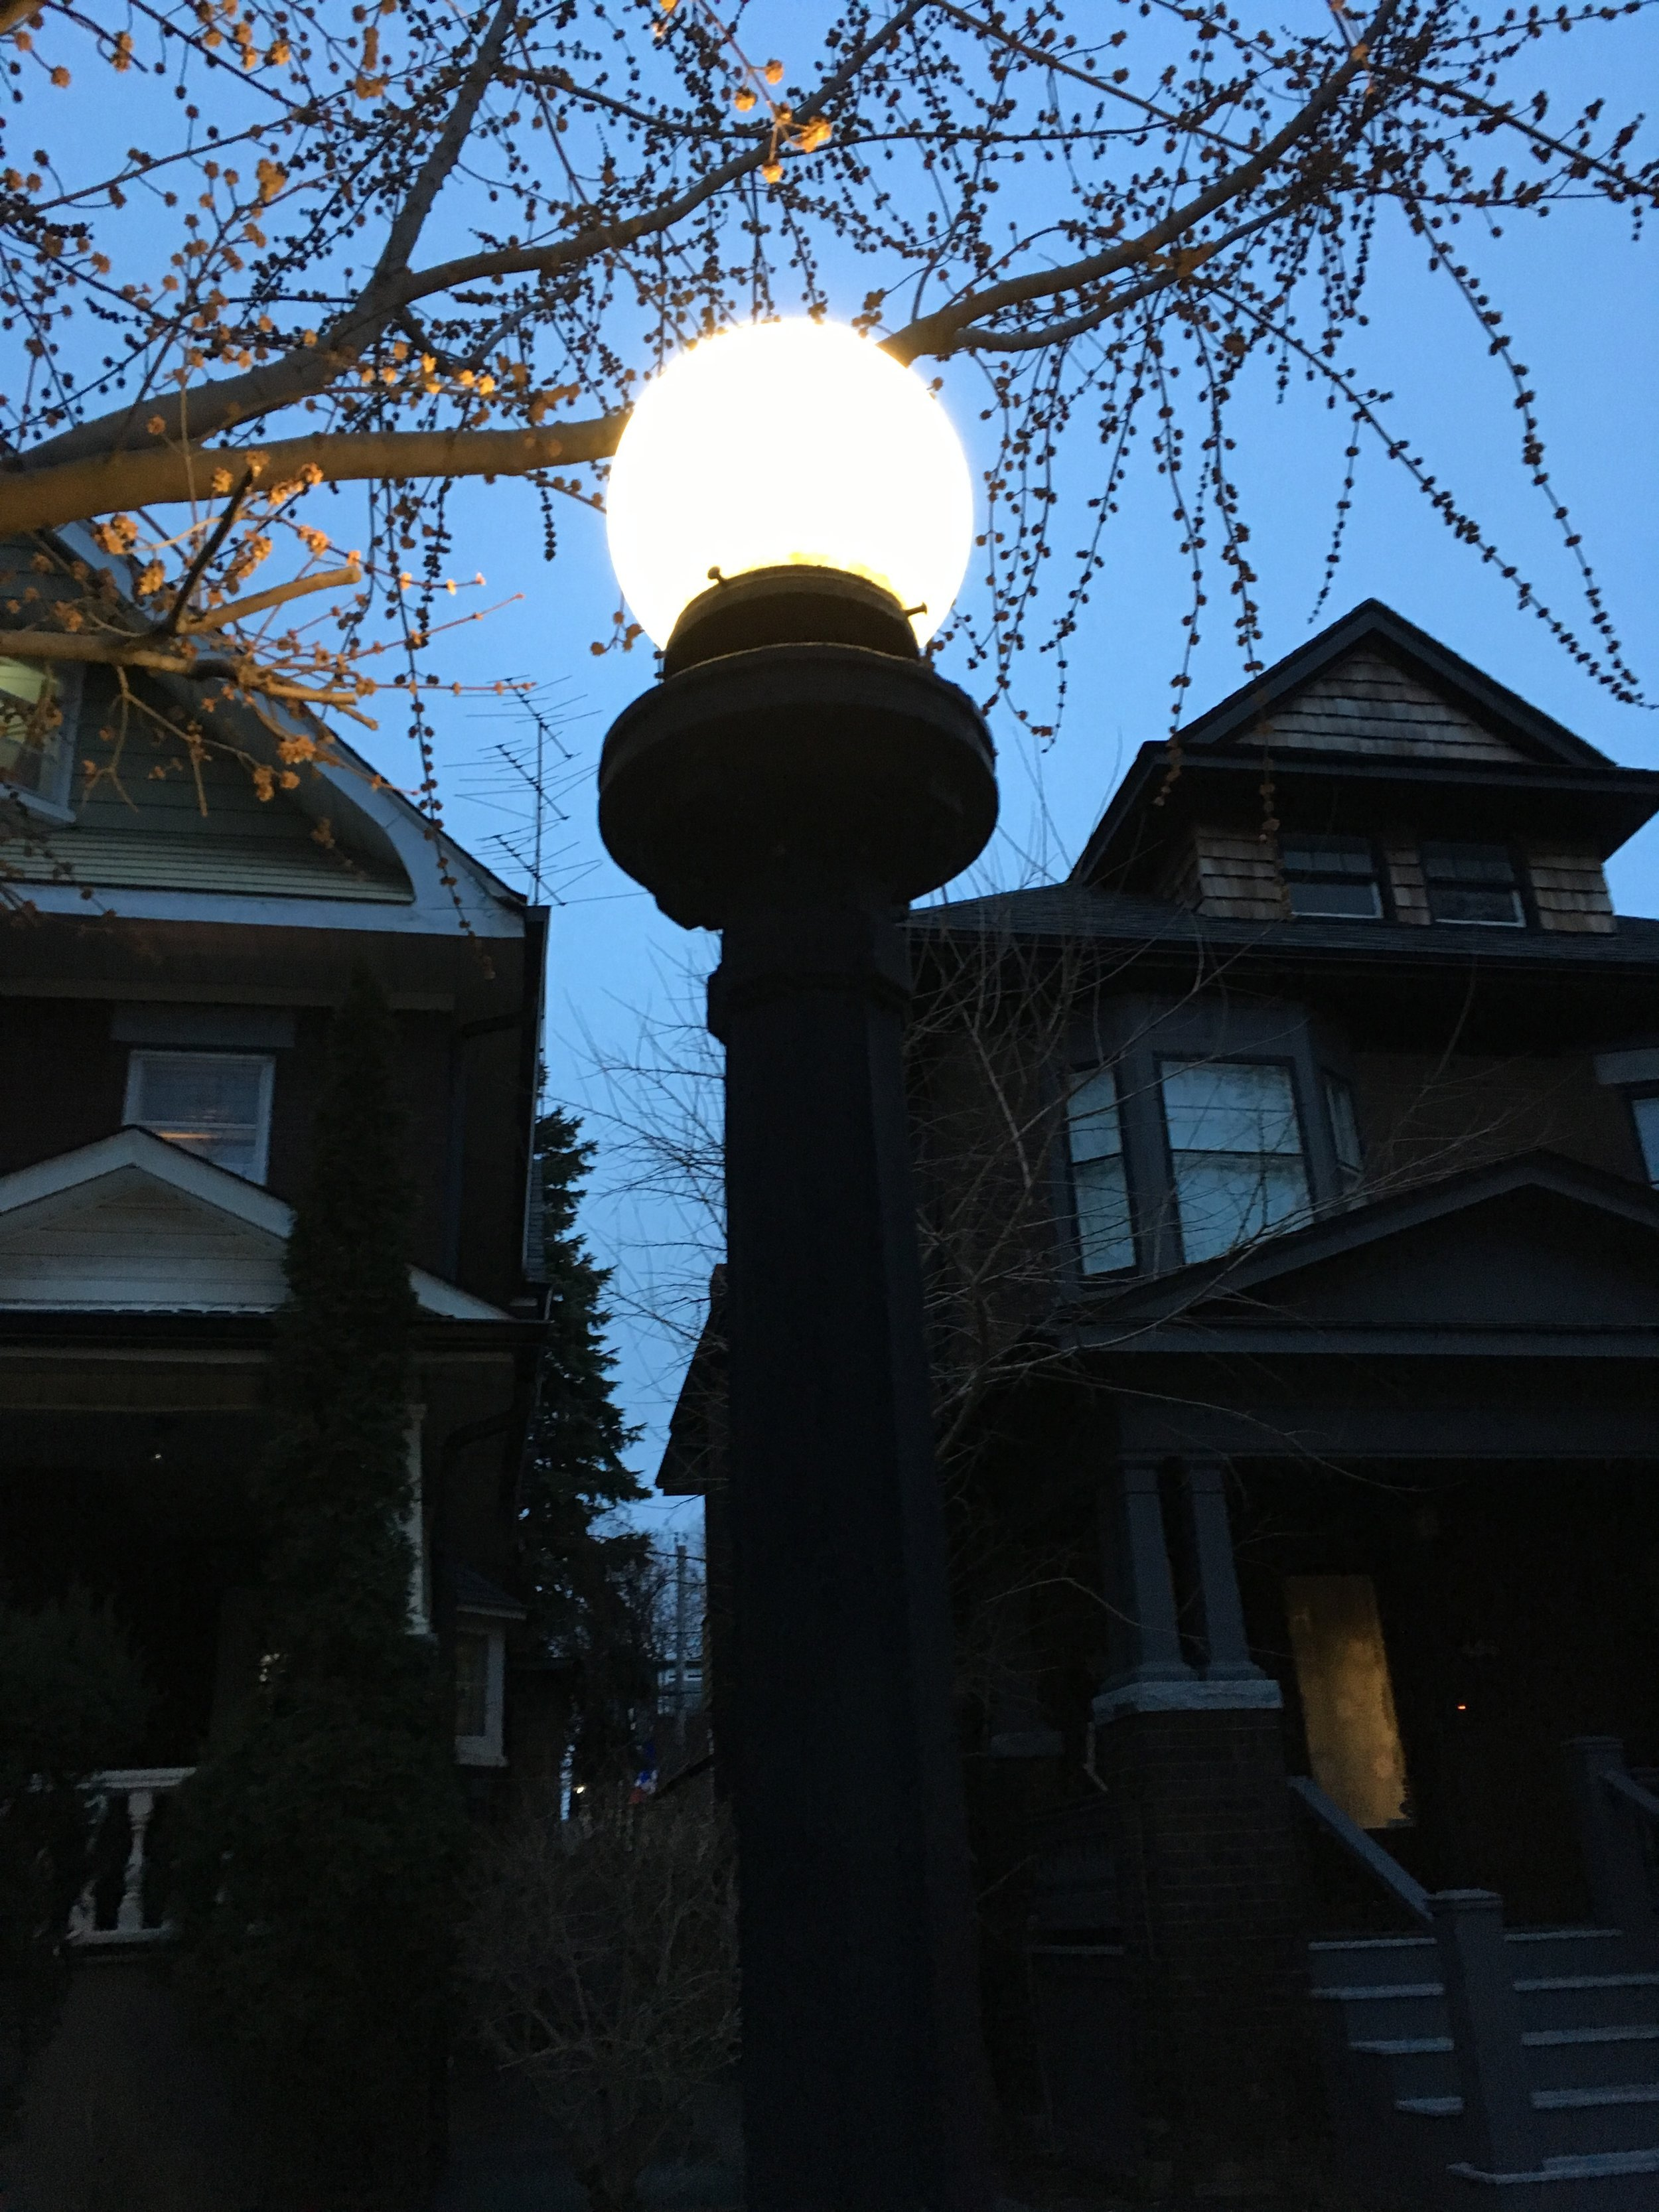 Palmerston Ave.    Located in Toronto's West End, Palmerston is where Eric Kelton, the masquerada Hierarch, lives. With gates on each end and original-style lamplights, Palmerston's stately old homes have mostly been turned into apartments.